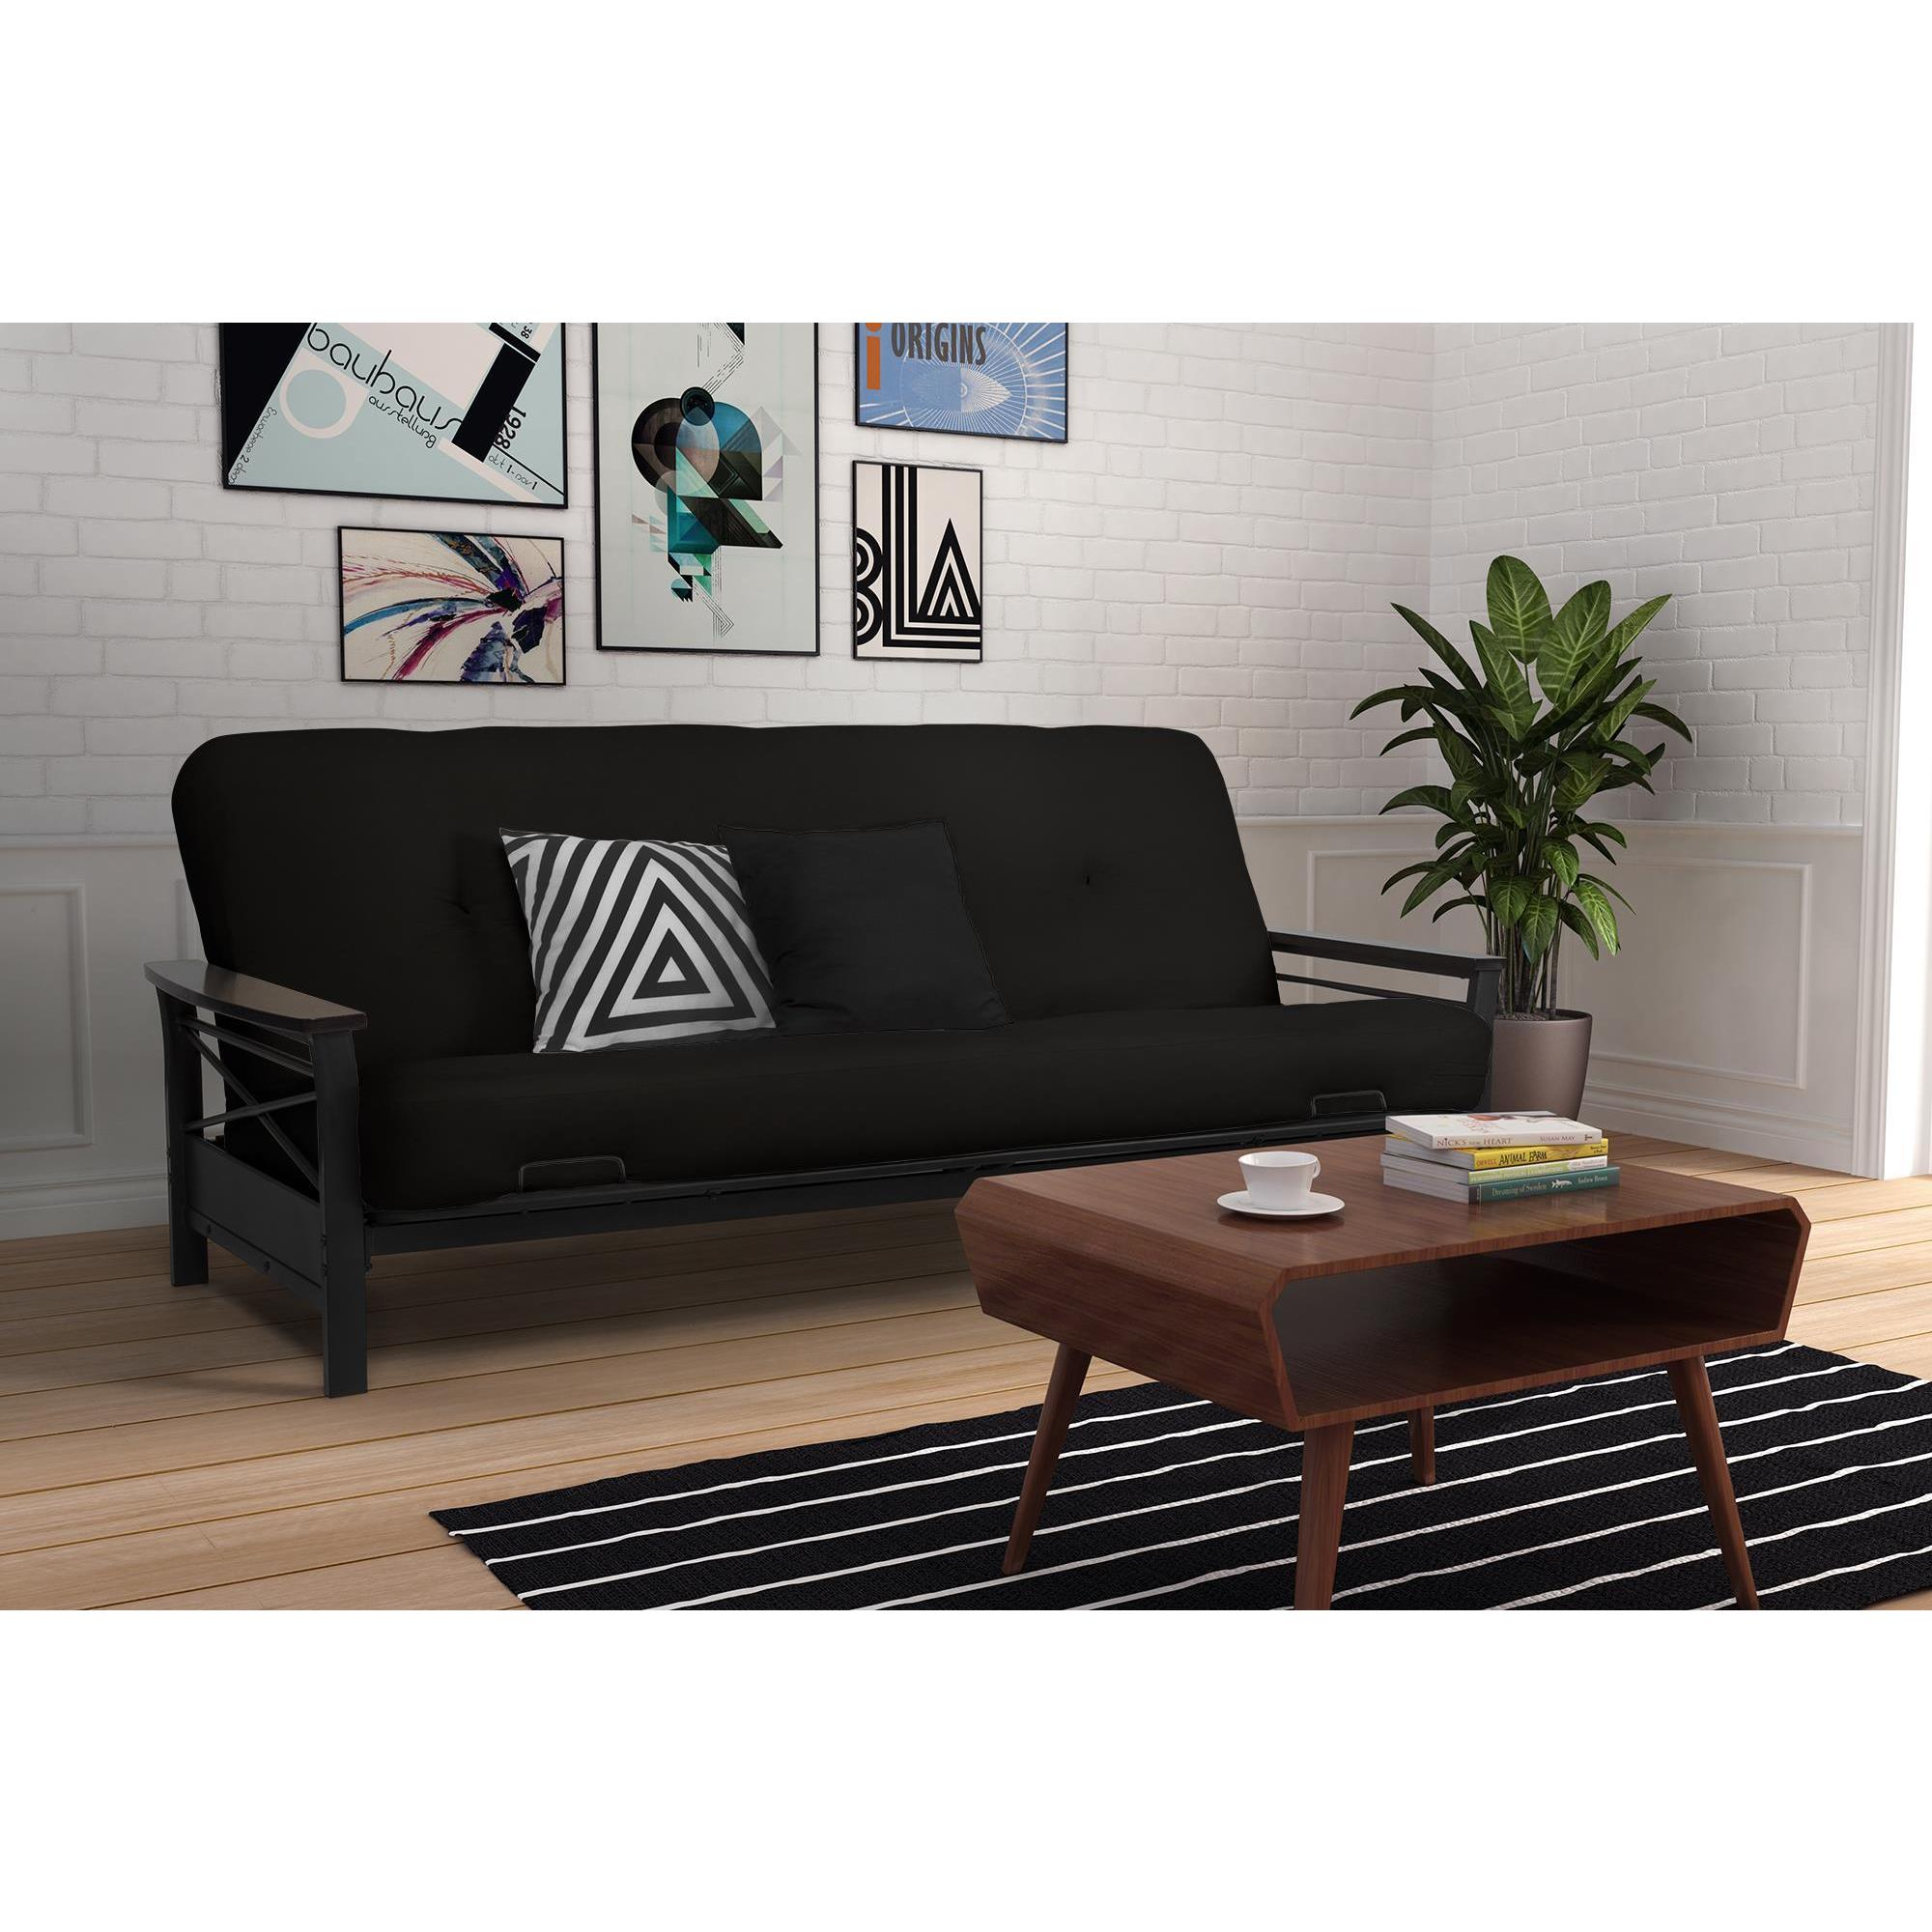 queen frame wood acke with cup holders leather info black futon futons cover target metal